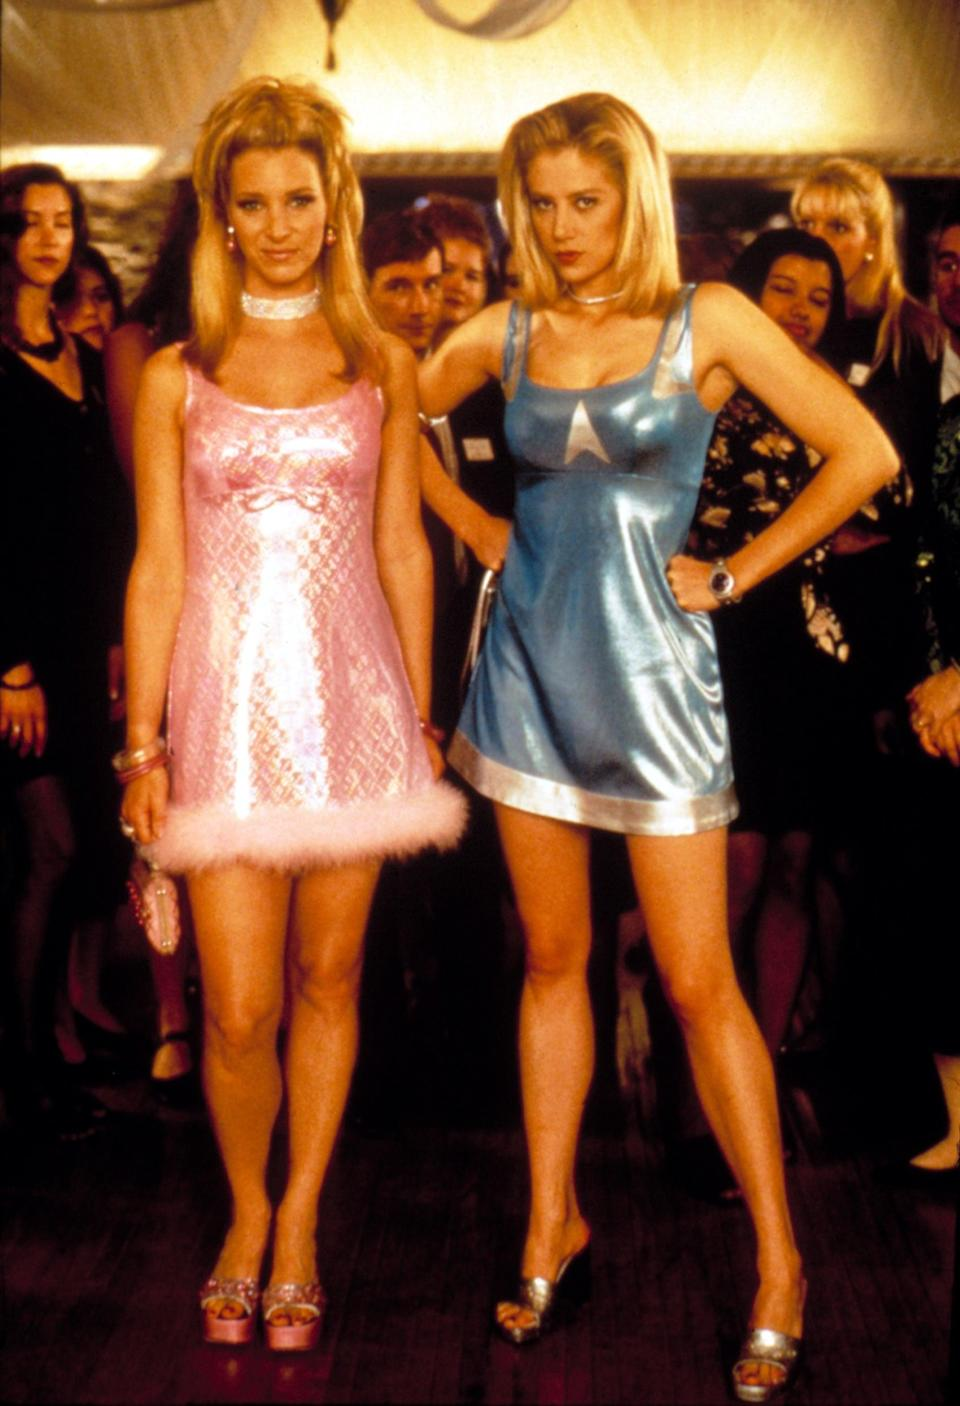 """<p>To dress as our favorite '90s besties from <a href=""""https://www.popsugar.com/love/Romy-Michele-High-School-Reunion-GIFs-28579360"""" class=""""link rapid-noclick-resp"""" rel=""""nofollow noopener"""" target=""""_blank"""" data-ylk=""""slk:Romy and Michele's High School Reunion"""">Romy and Michele's High School Reunion</a>, you need shiny, short dresses; chokers; platform shoes; and sweet dance moves.</p>"""